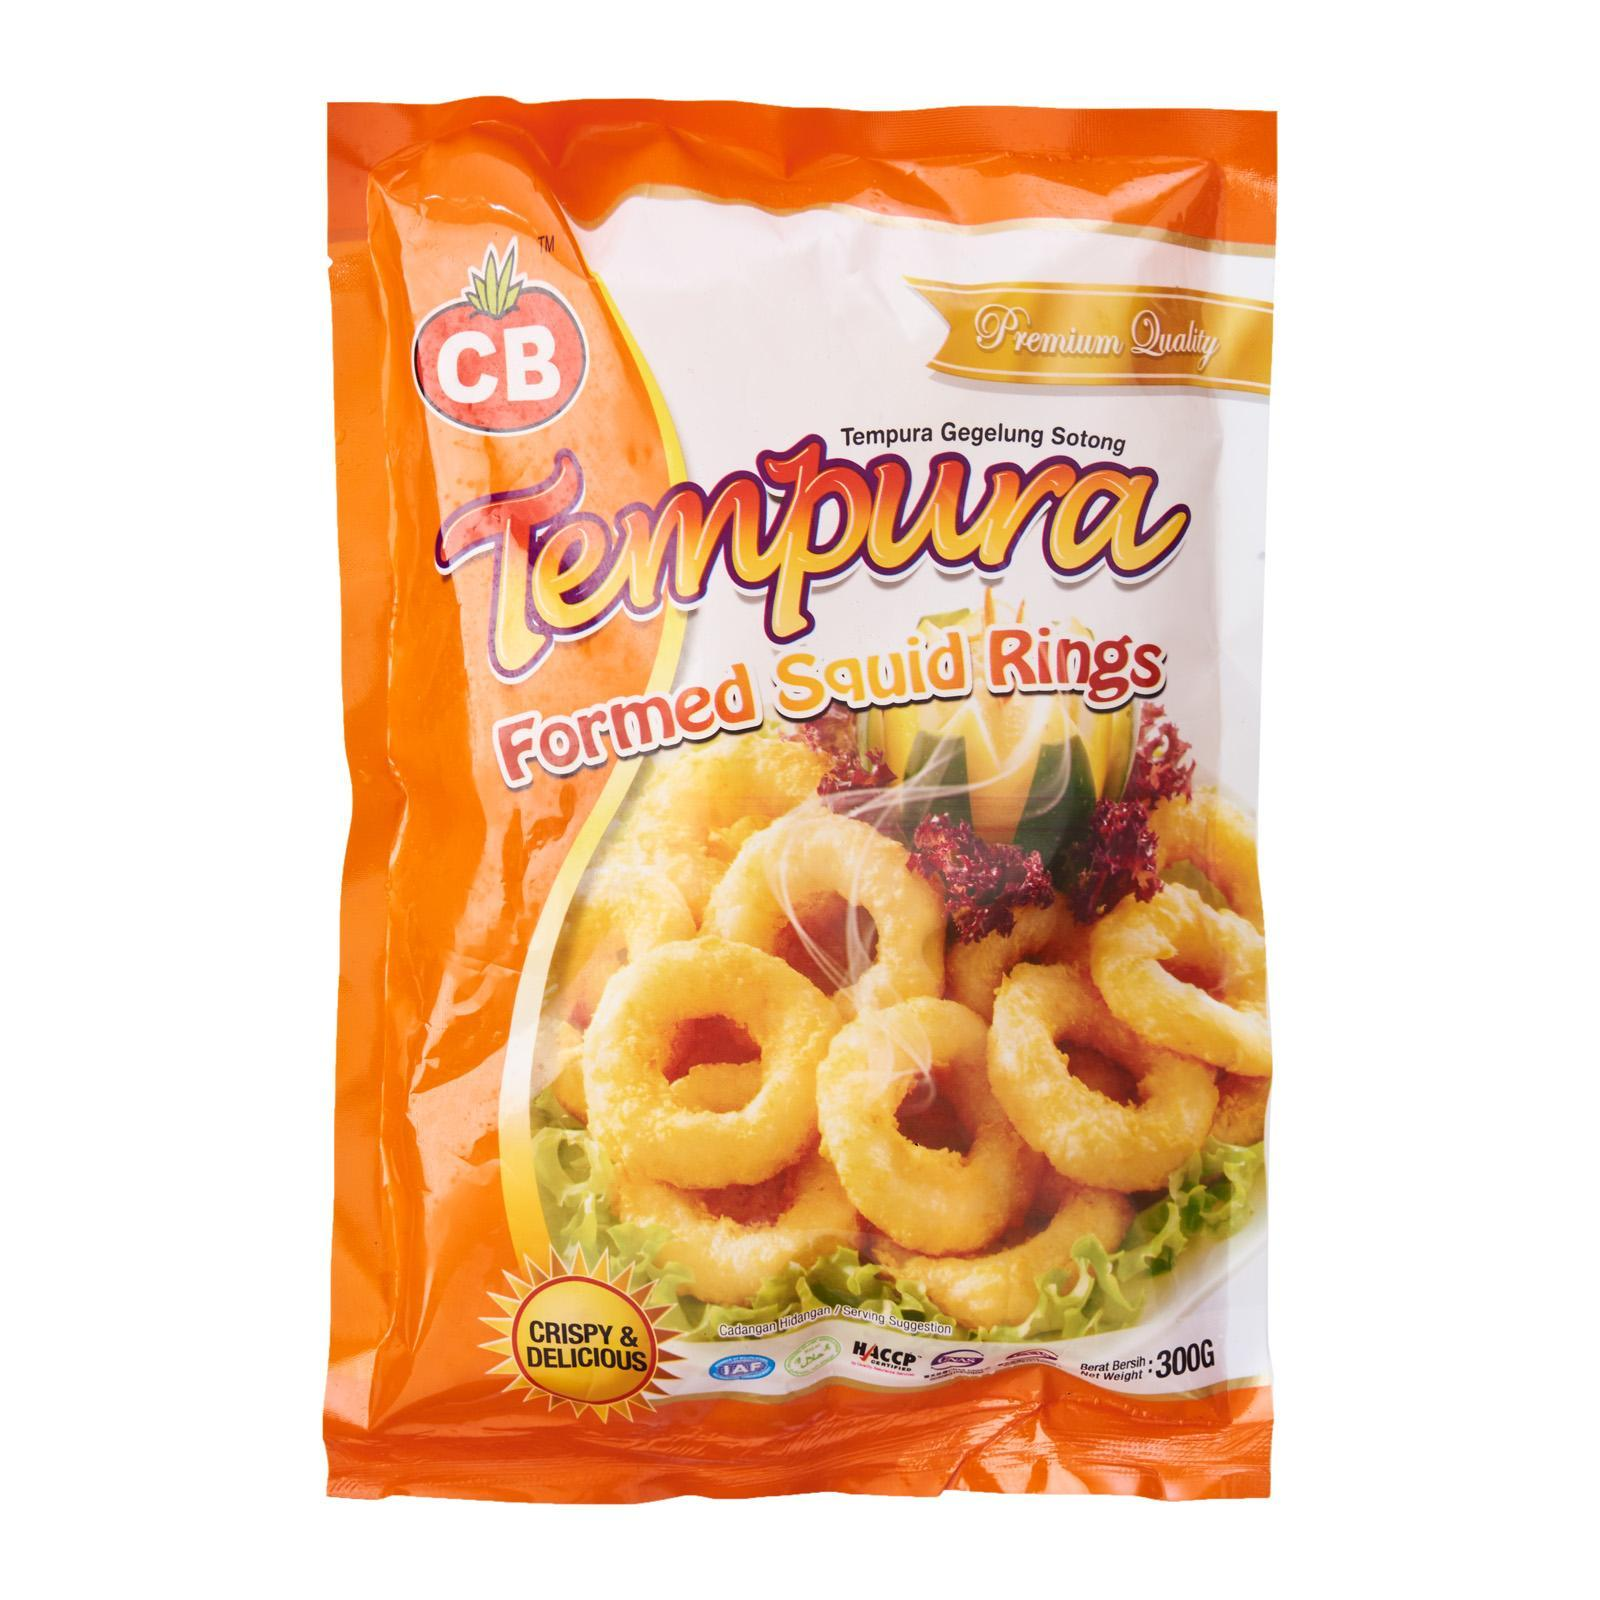 CB Tempura Former Squid Rings - Frozen